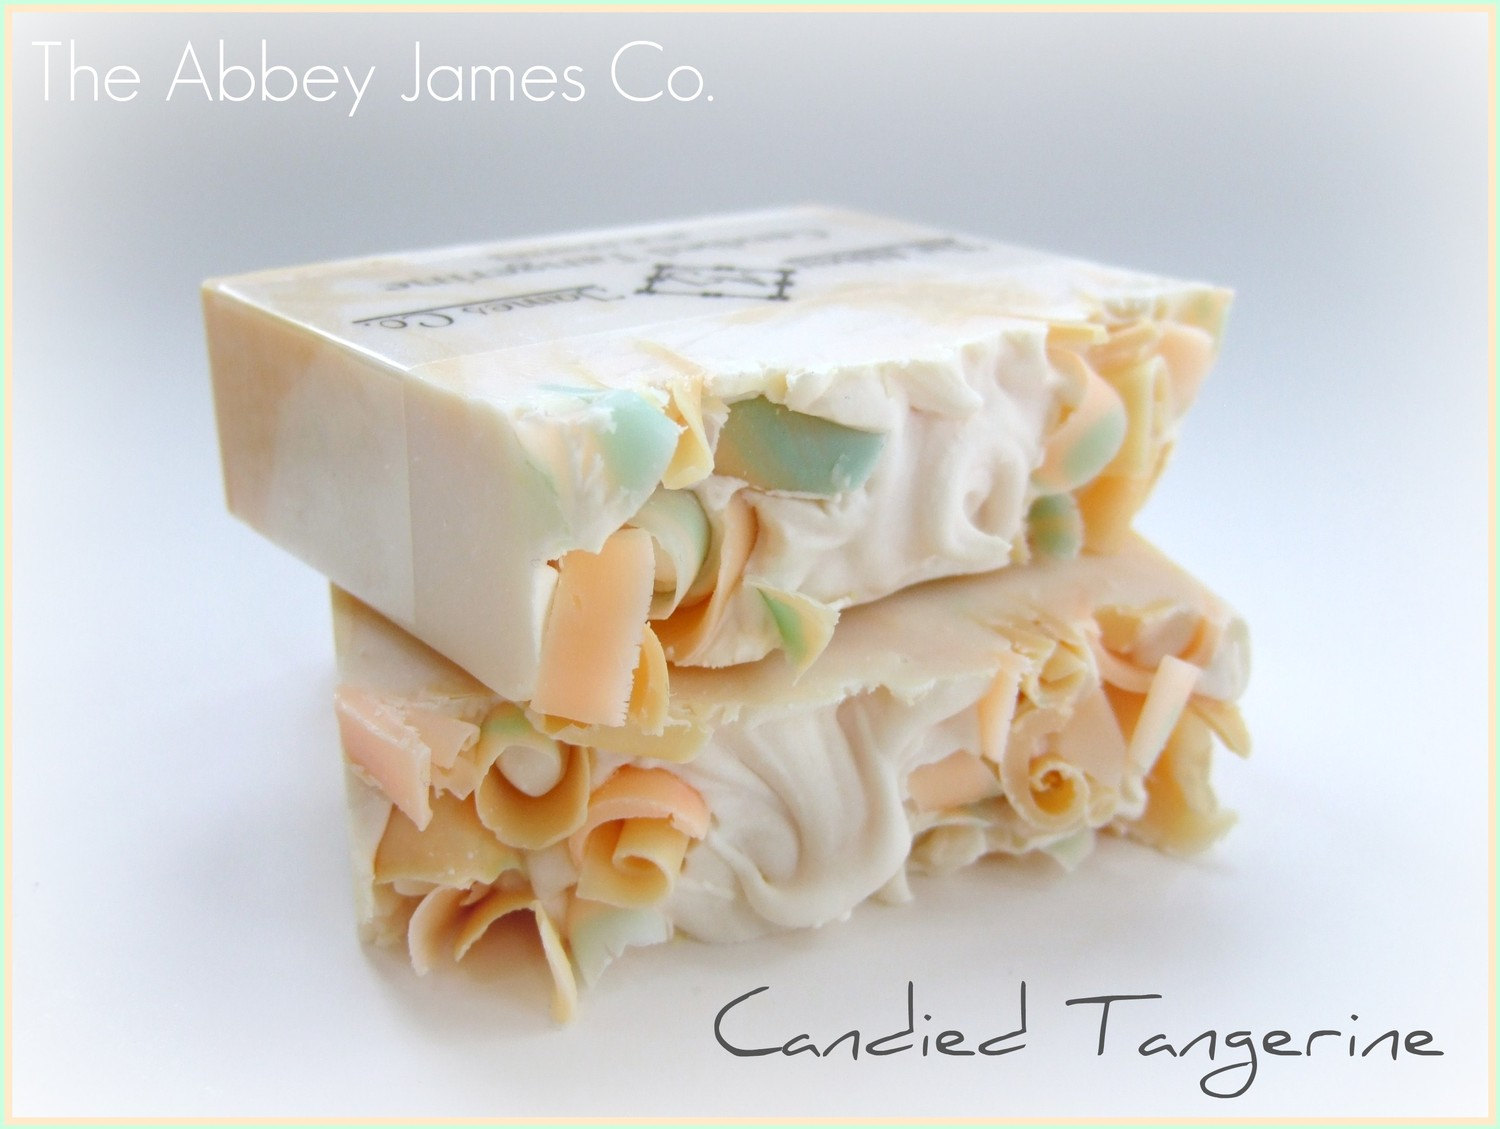 Candied Tangerine Gourmet Soap